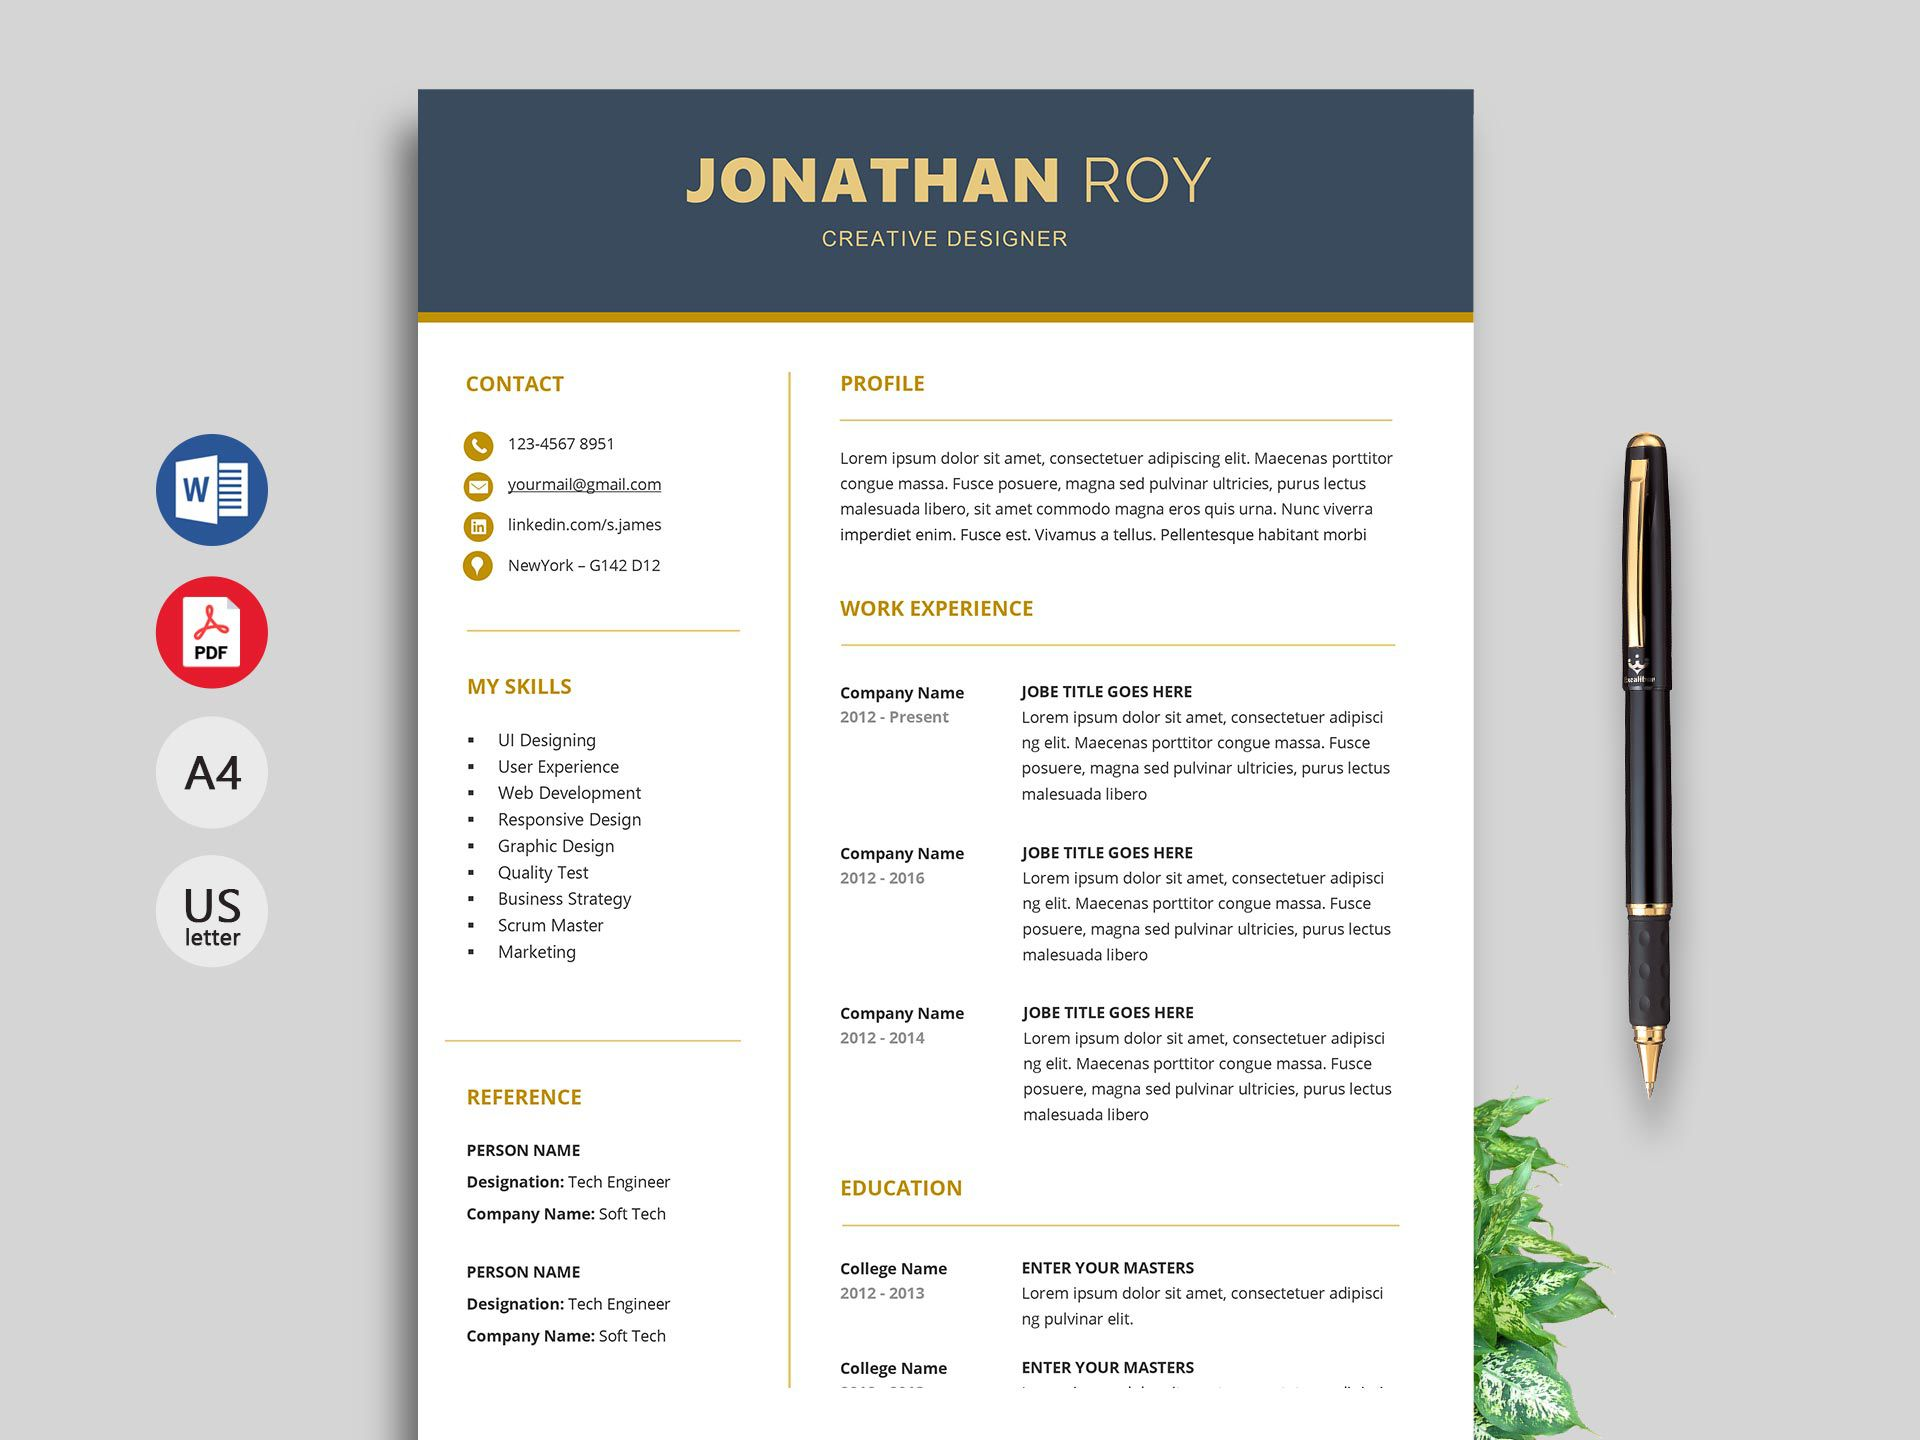 007 Unique Word Resume Template Free Image  Fresher Format Download 2020 MFull